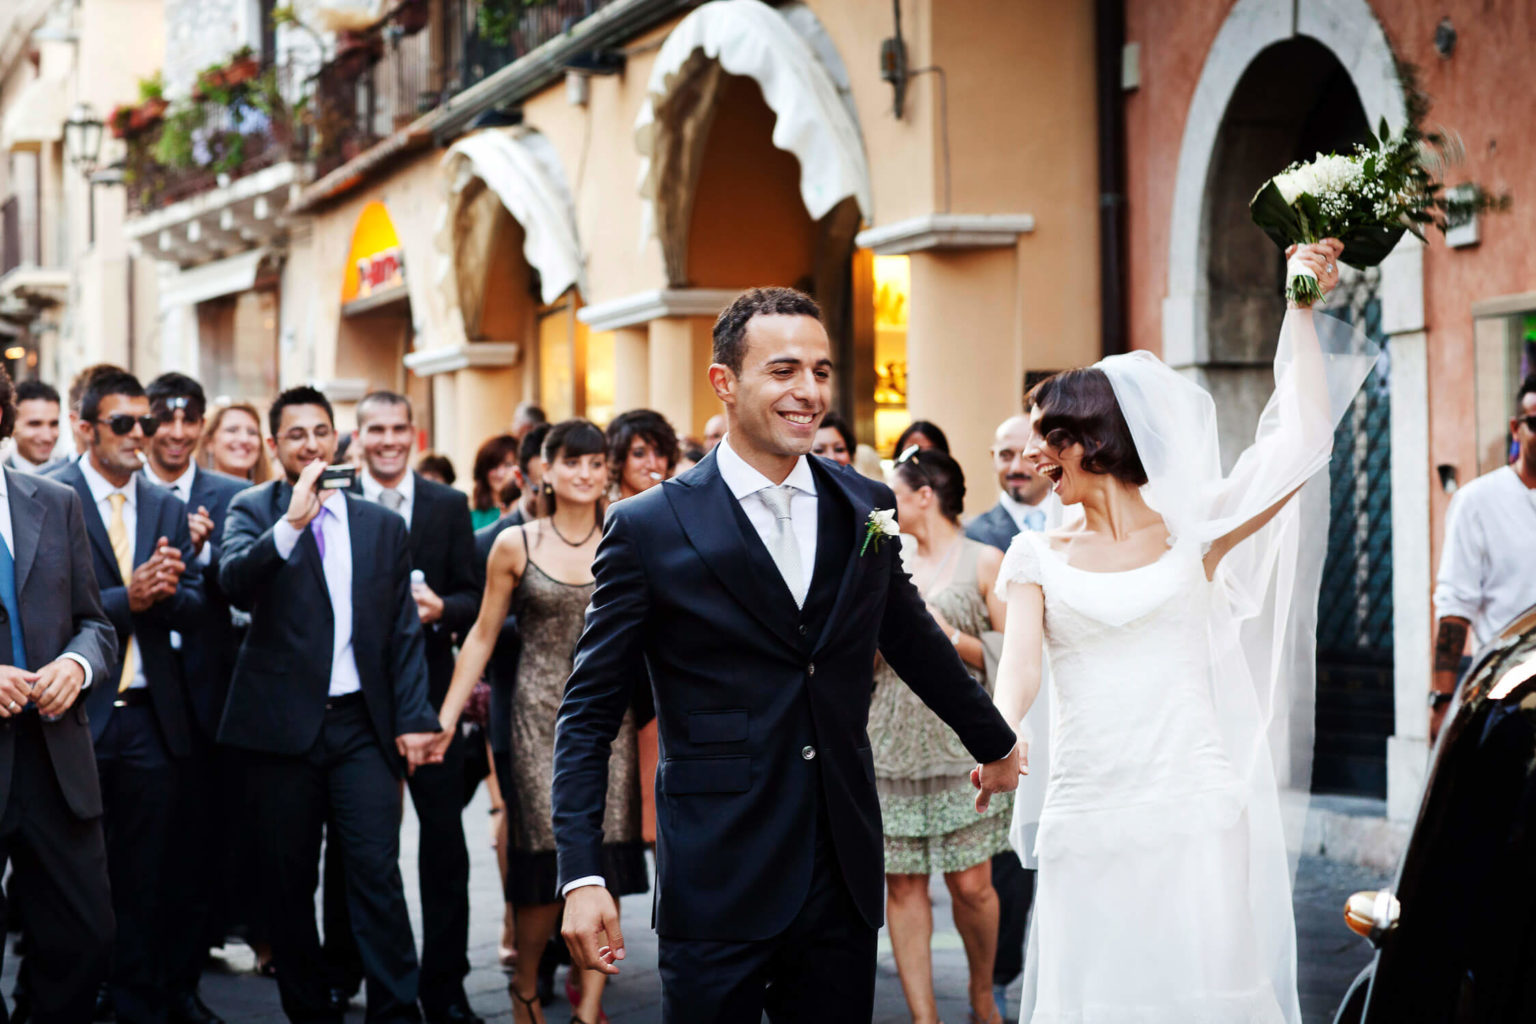 Bride turns cheerful towards friends, wedding photography by Nino Lombardo